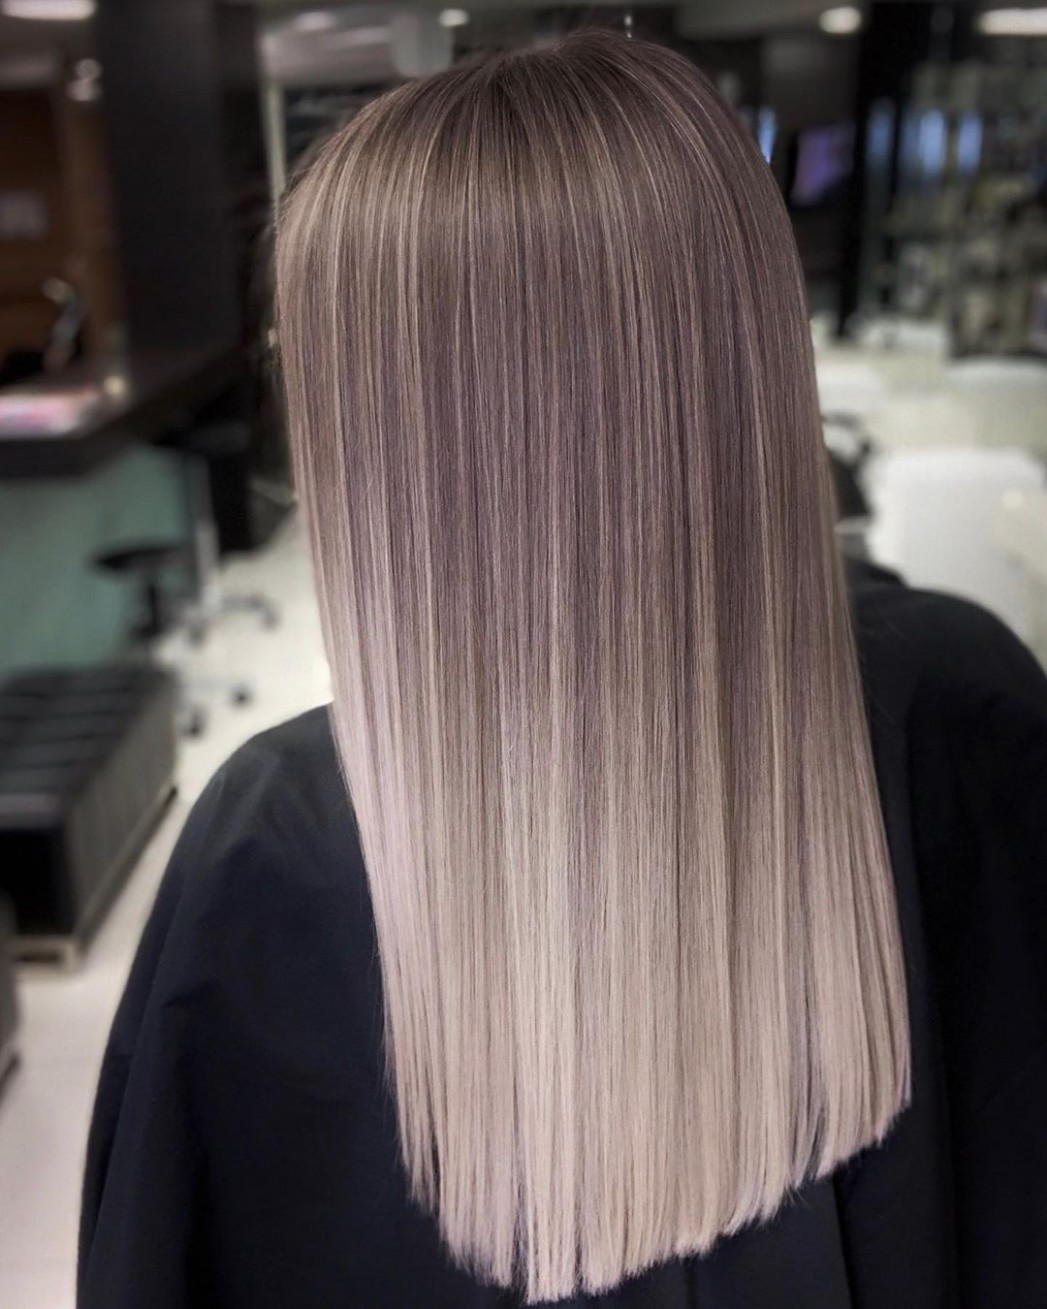 9 Medium Length Hairstyles and Color Switch-ups - Medium Haircut 9